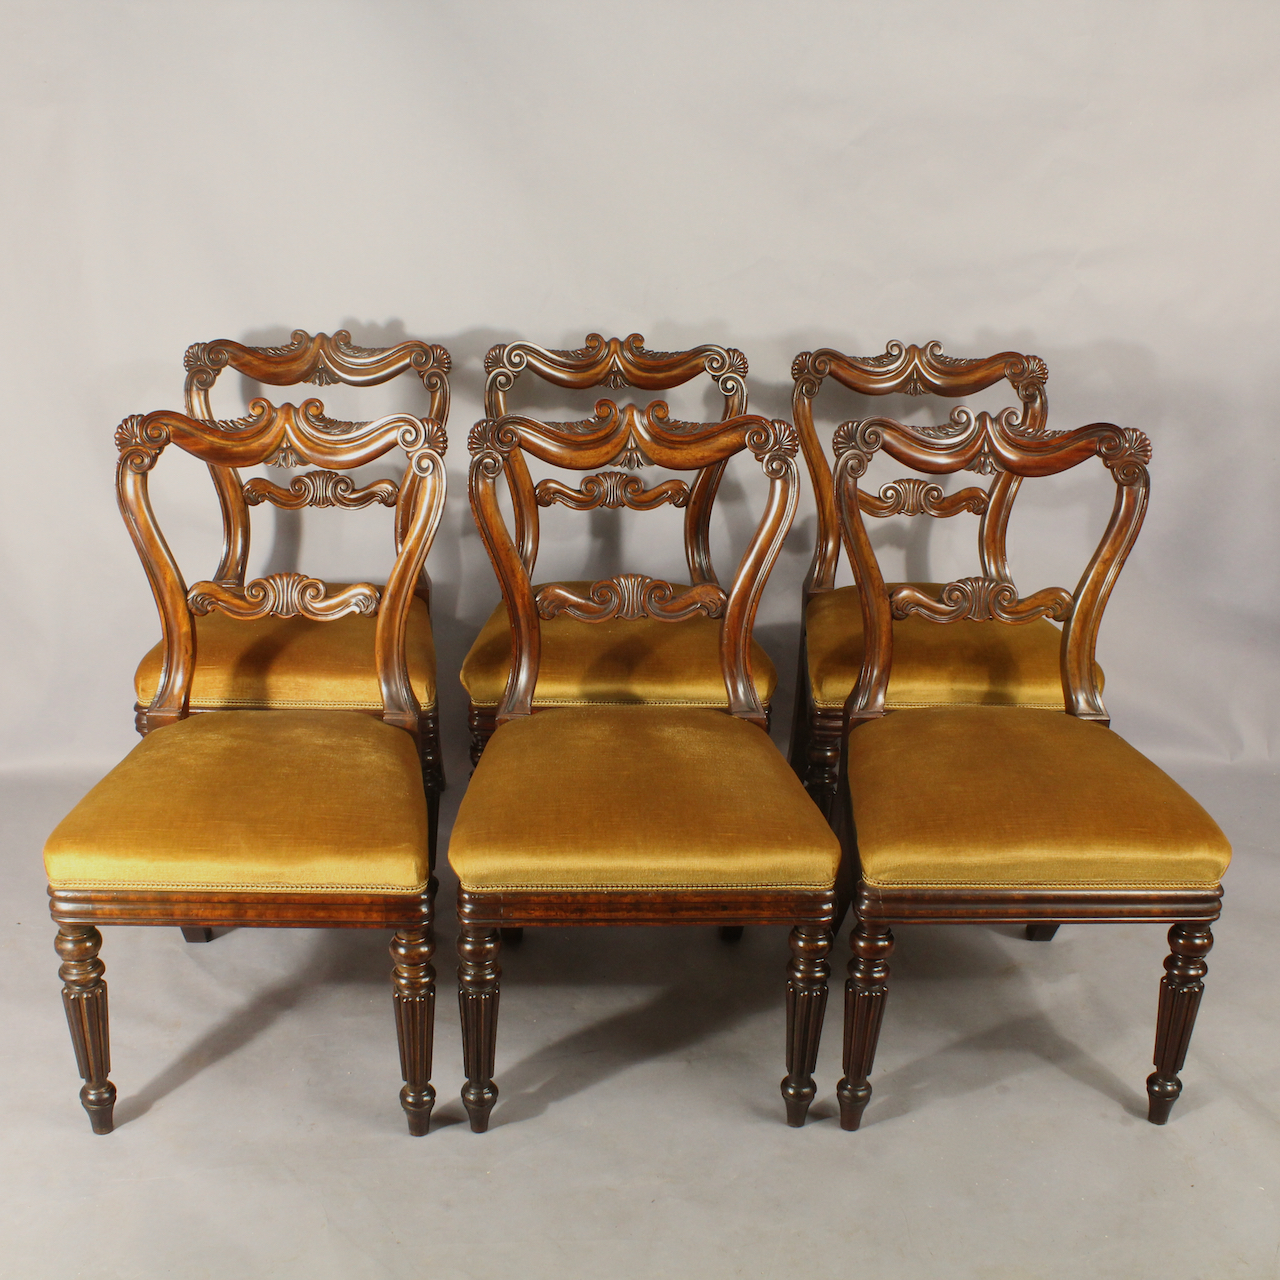 Gillows Chairs